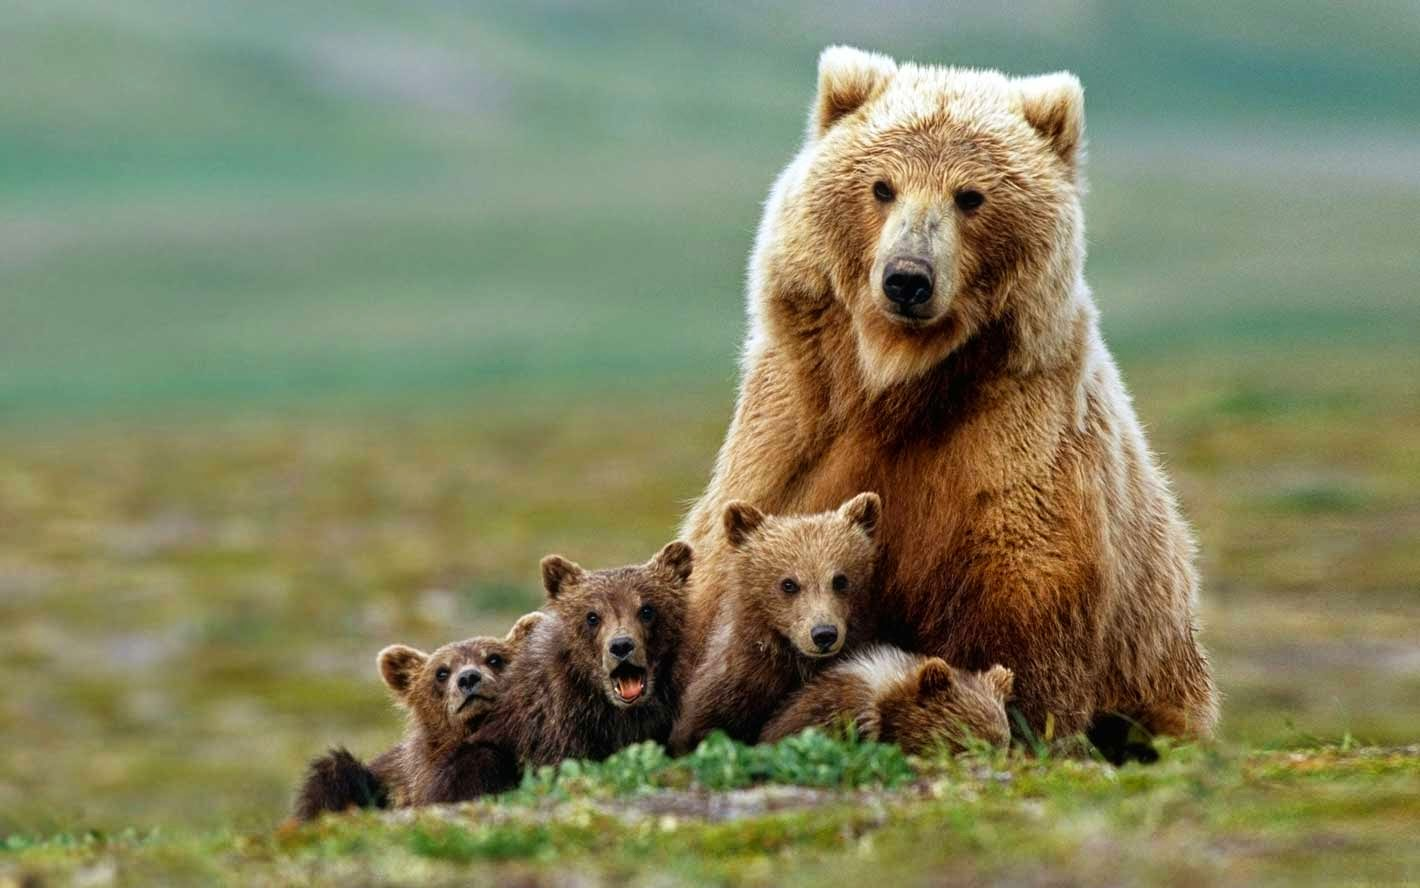 Bear Mother & Kids Love